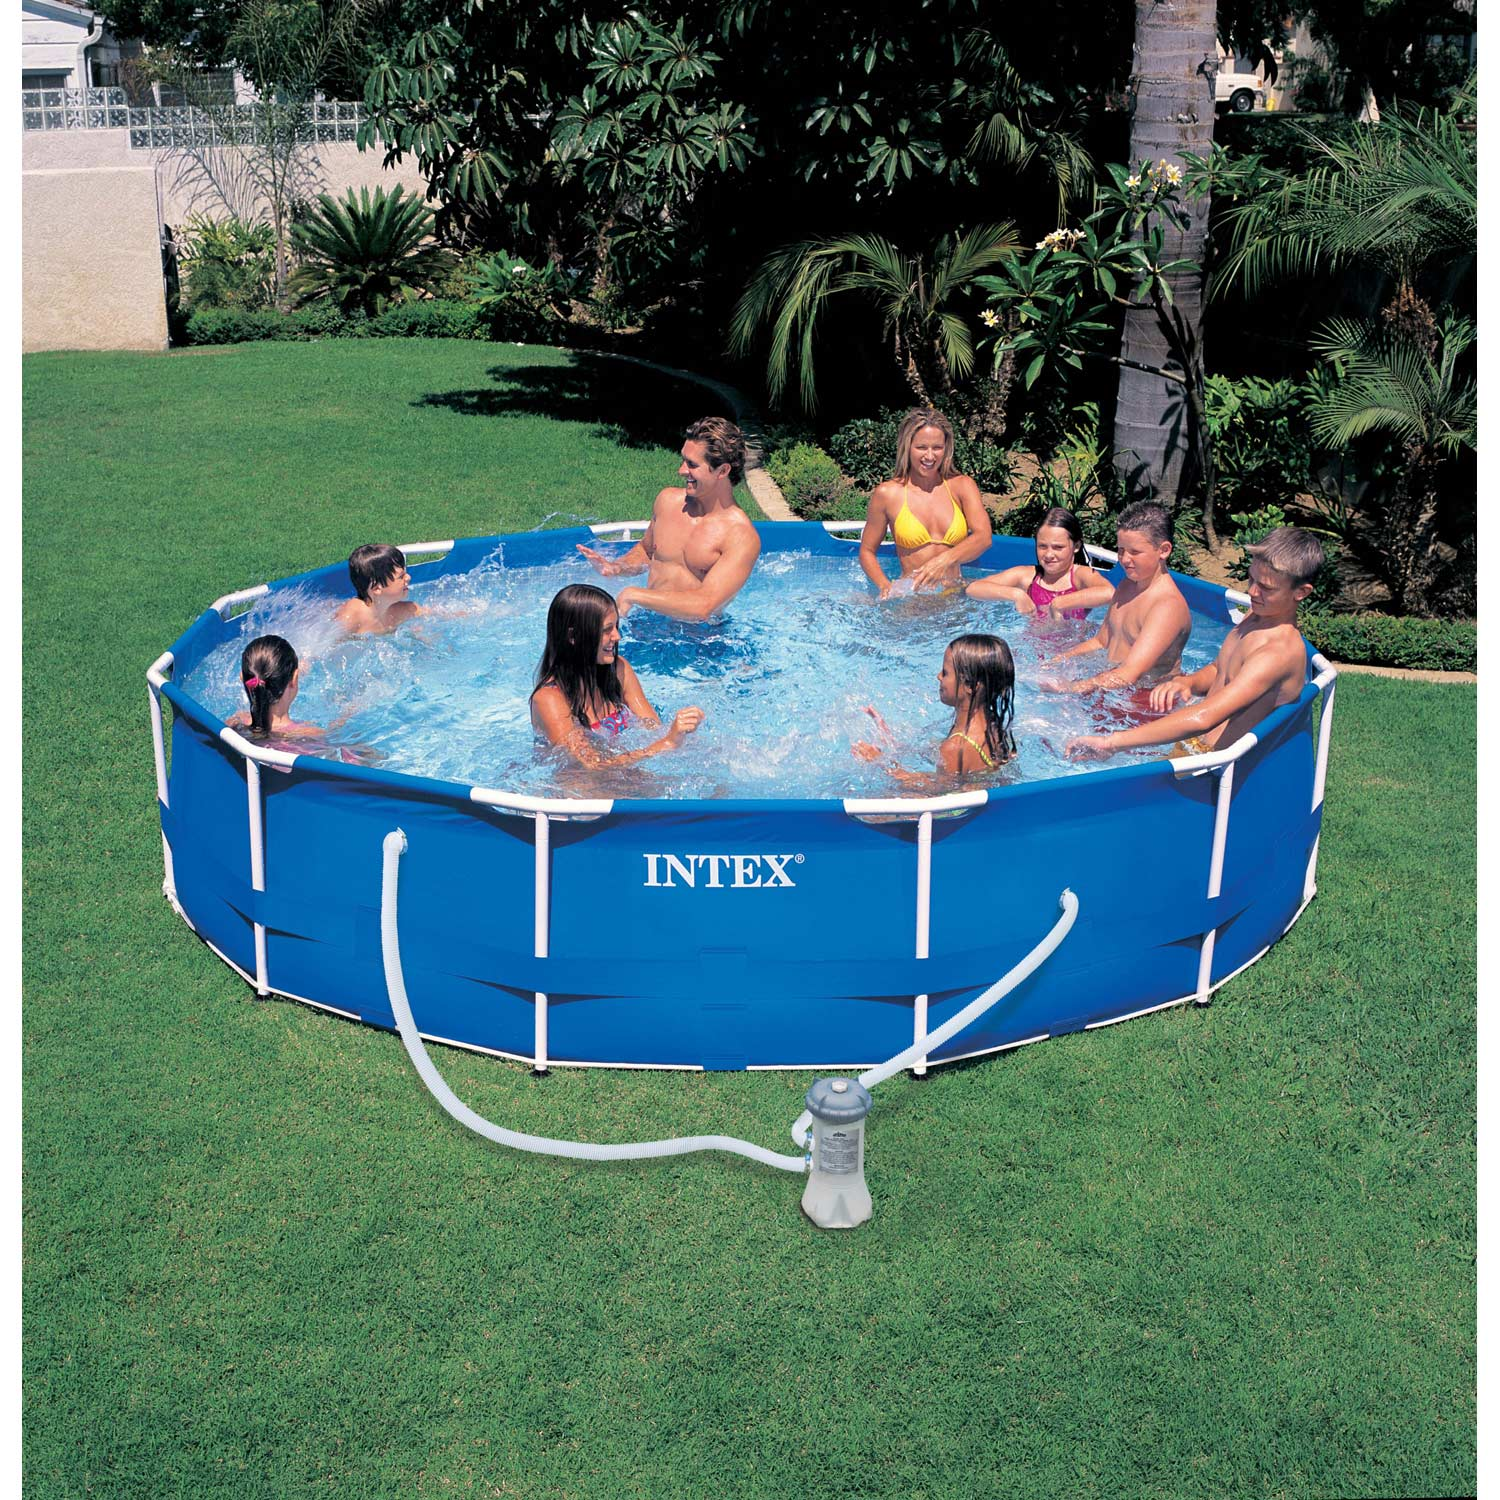 Piscine hors sol autoportante tubulaire metal frame intex for Piscine hors sol intex